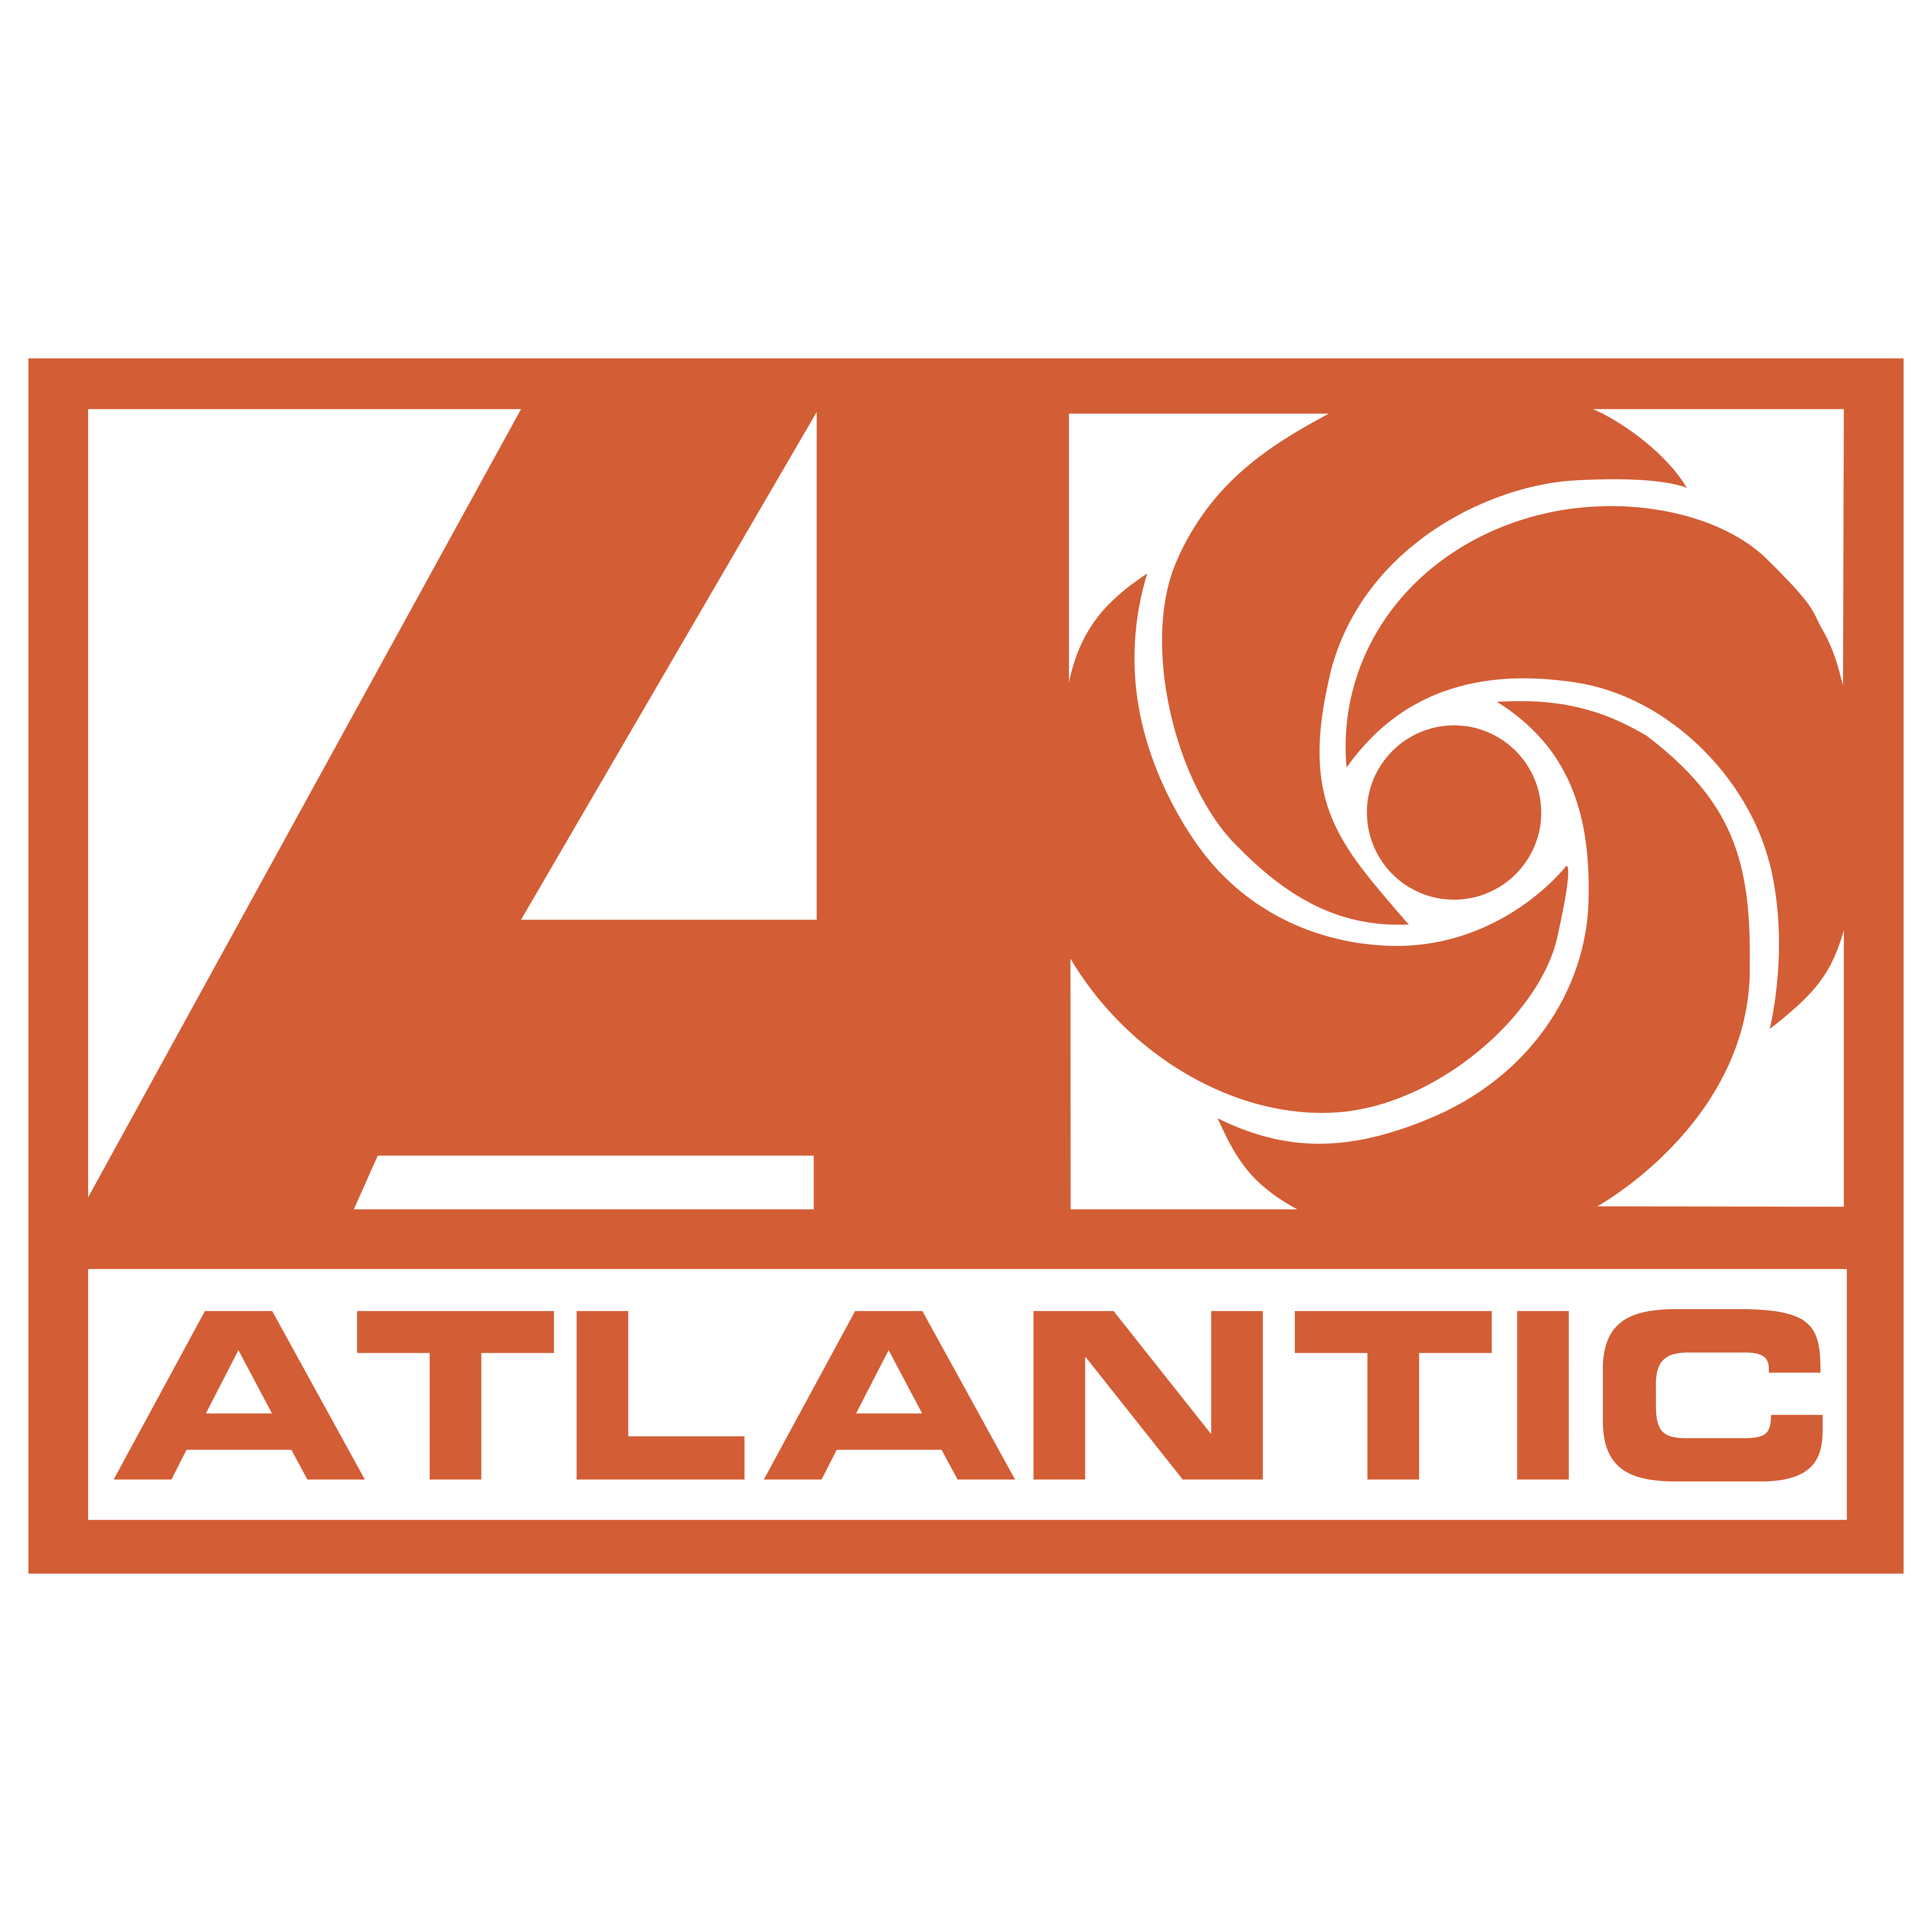 atlantic records � logos download